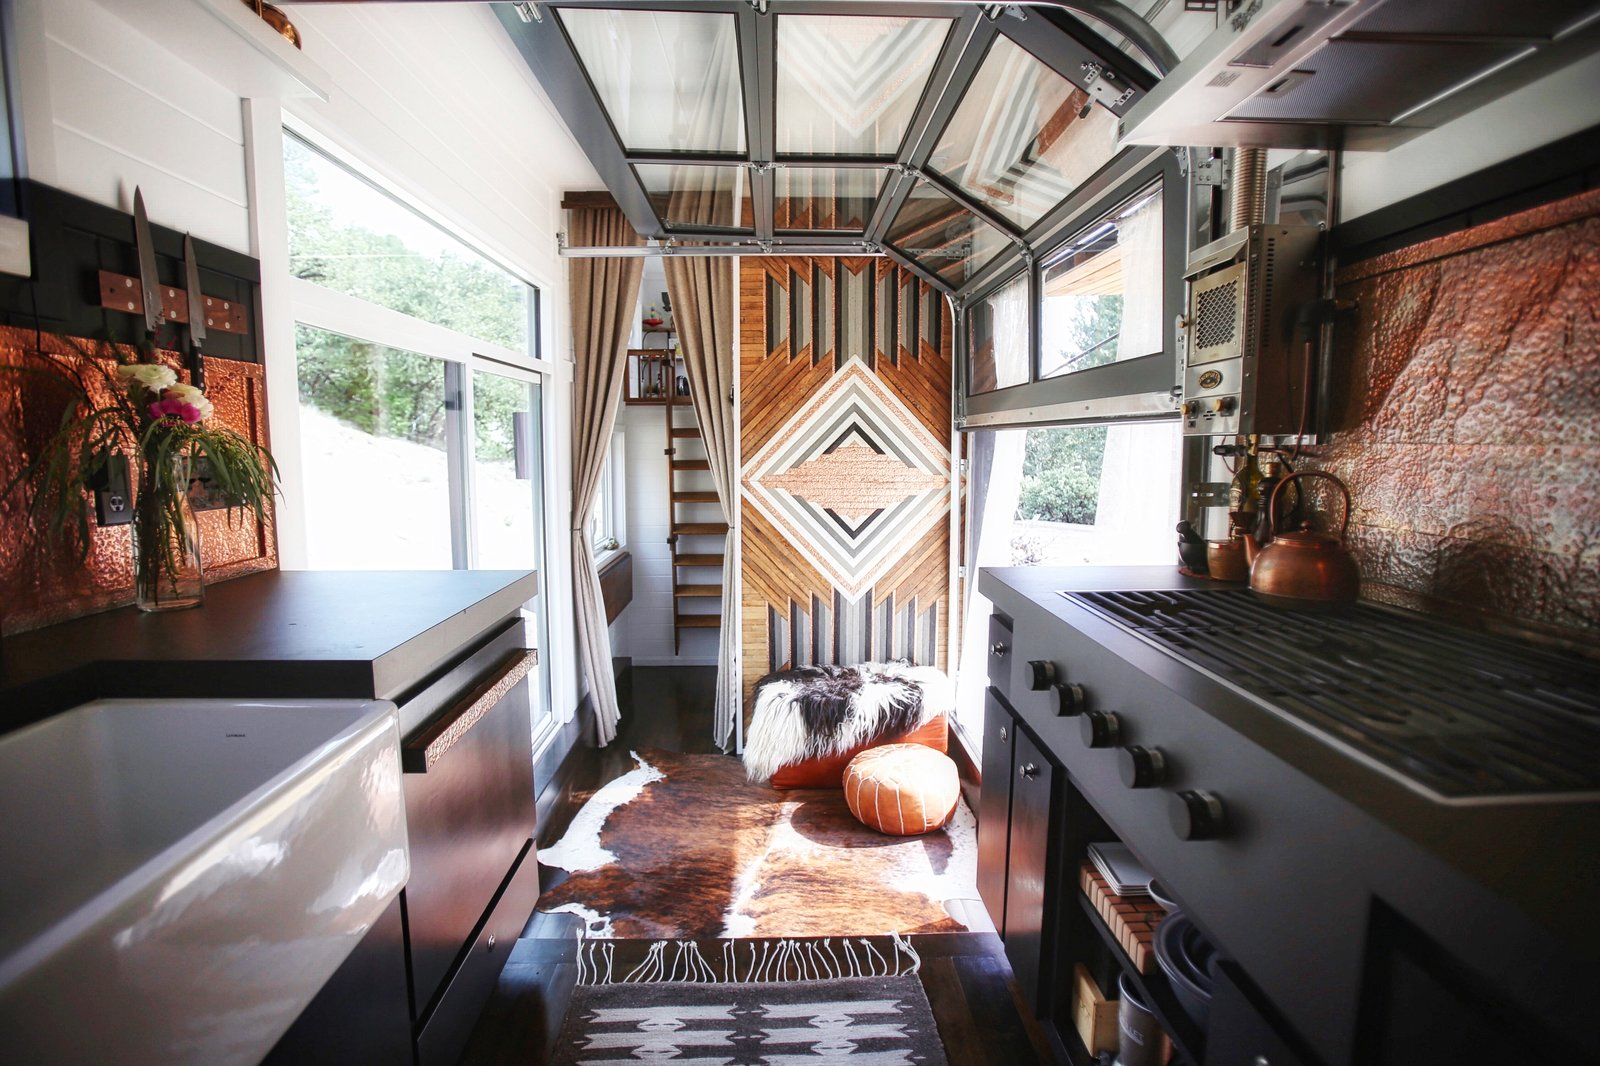 A California Couple Customize Their Tiny Home With Multi Layered Interiors Dwell